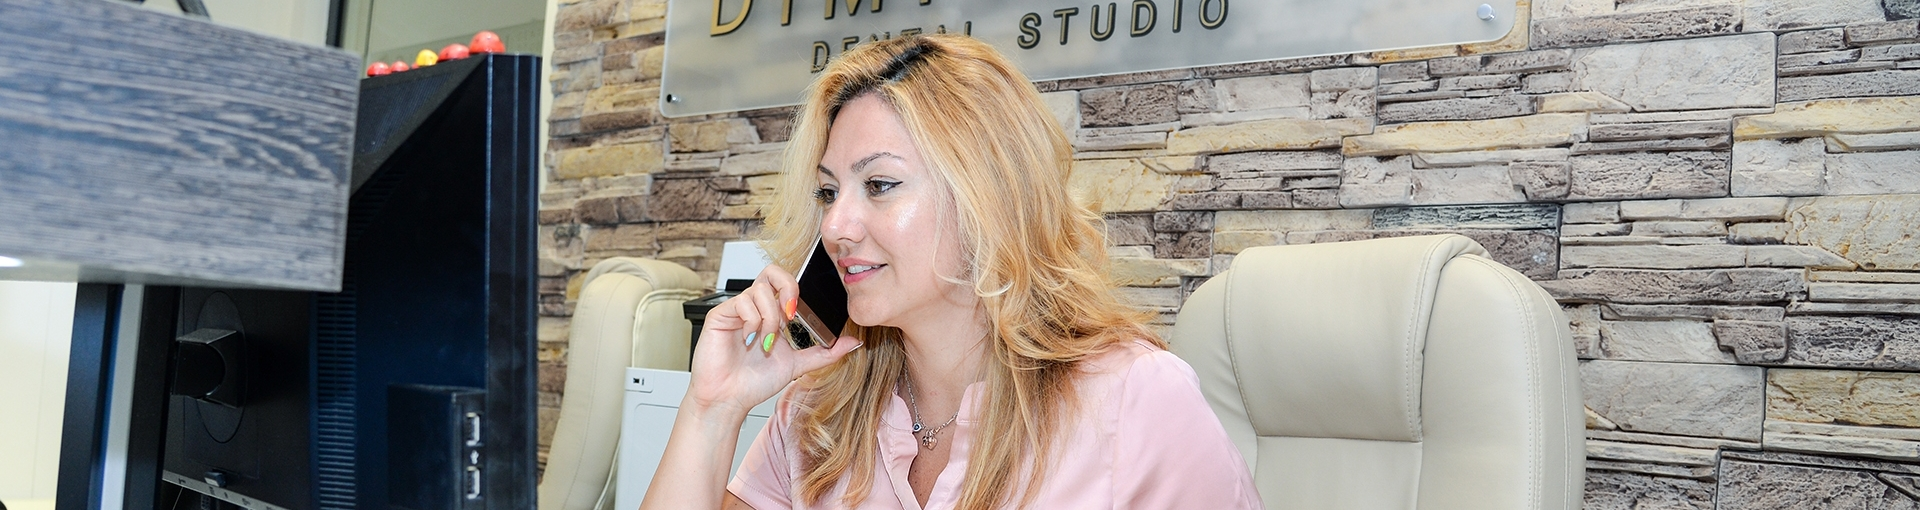 Dr. Dimitrovi Dental Studio